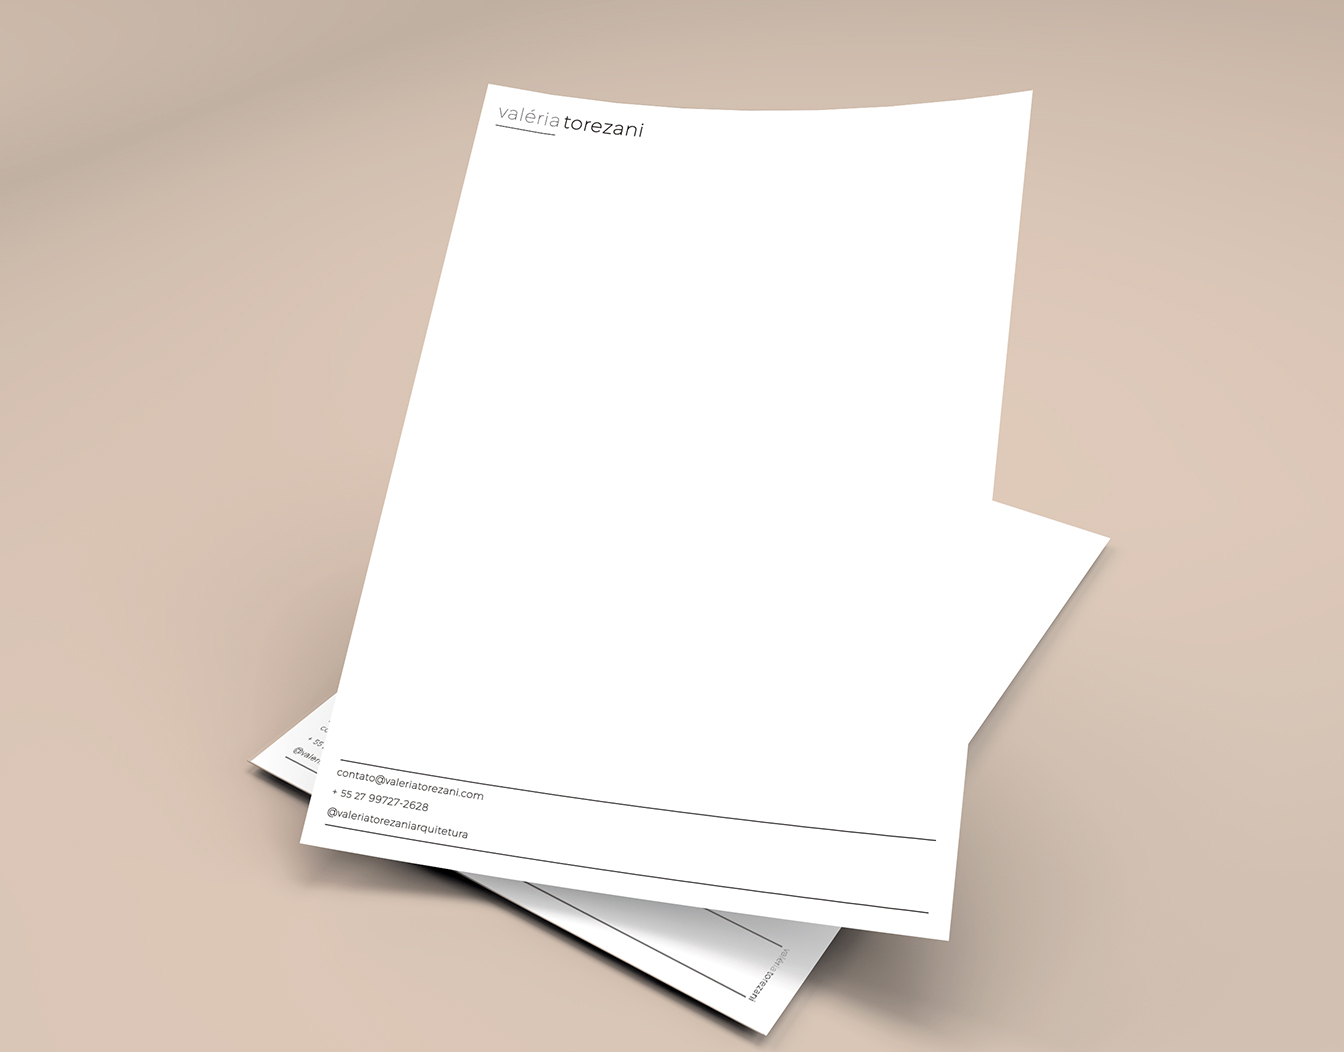 Two sheets of white letterhead